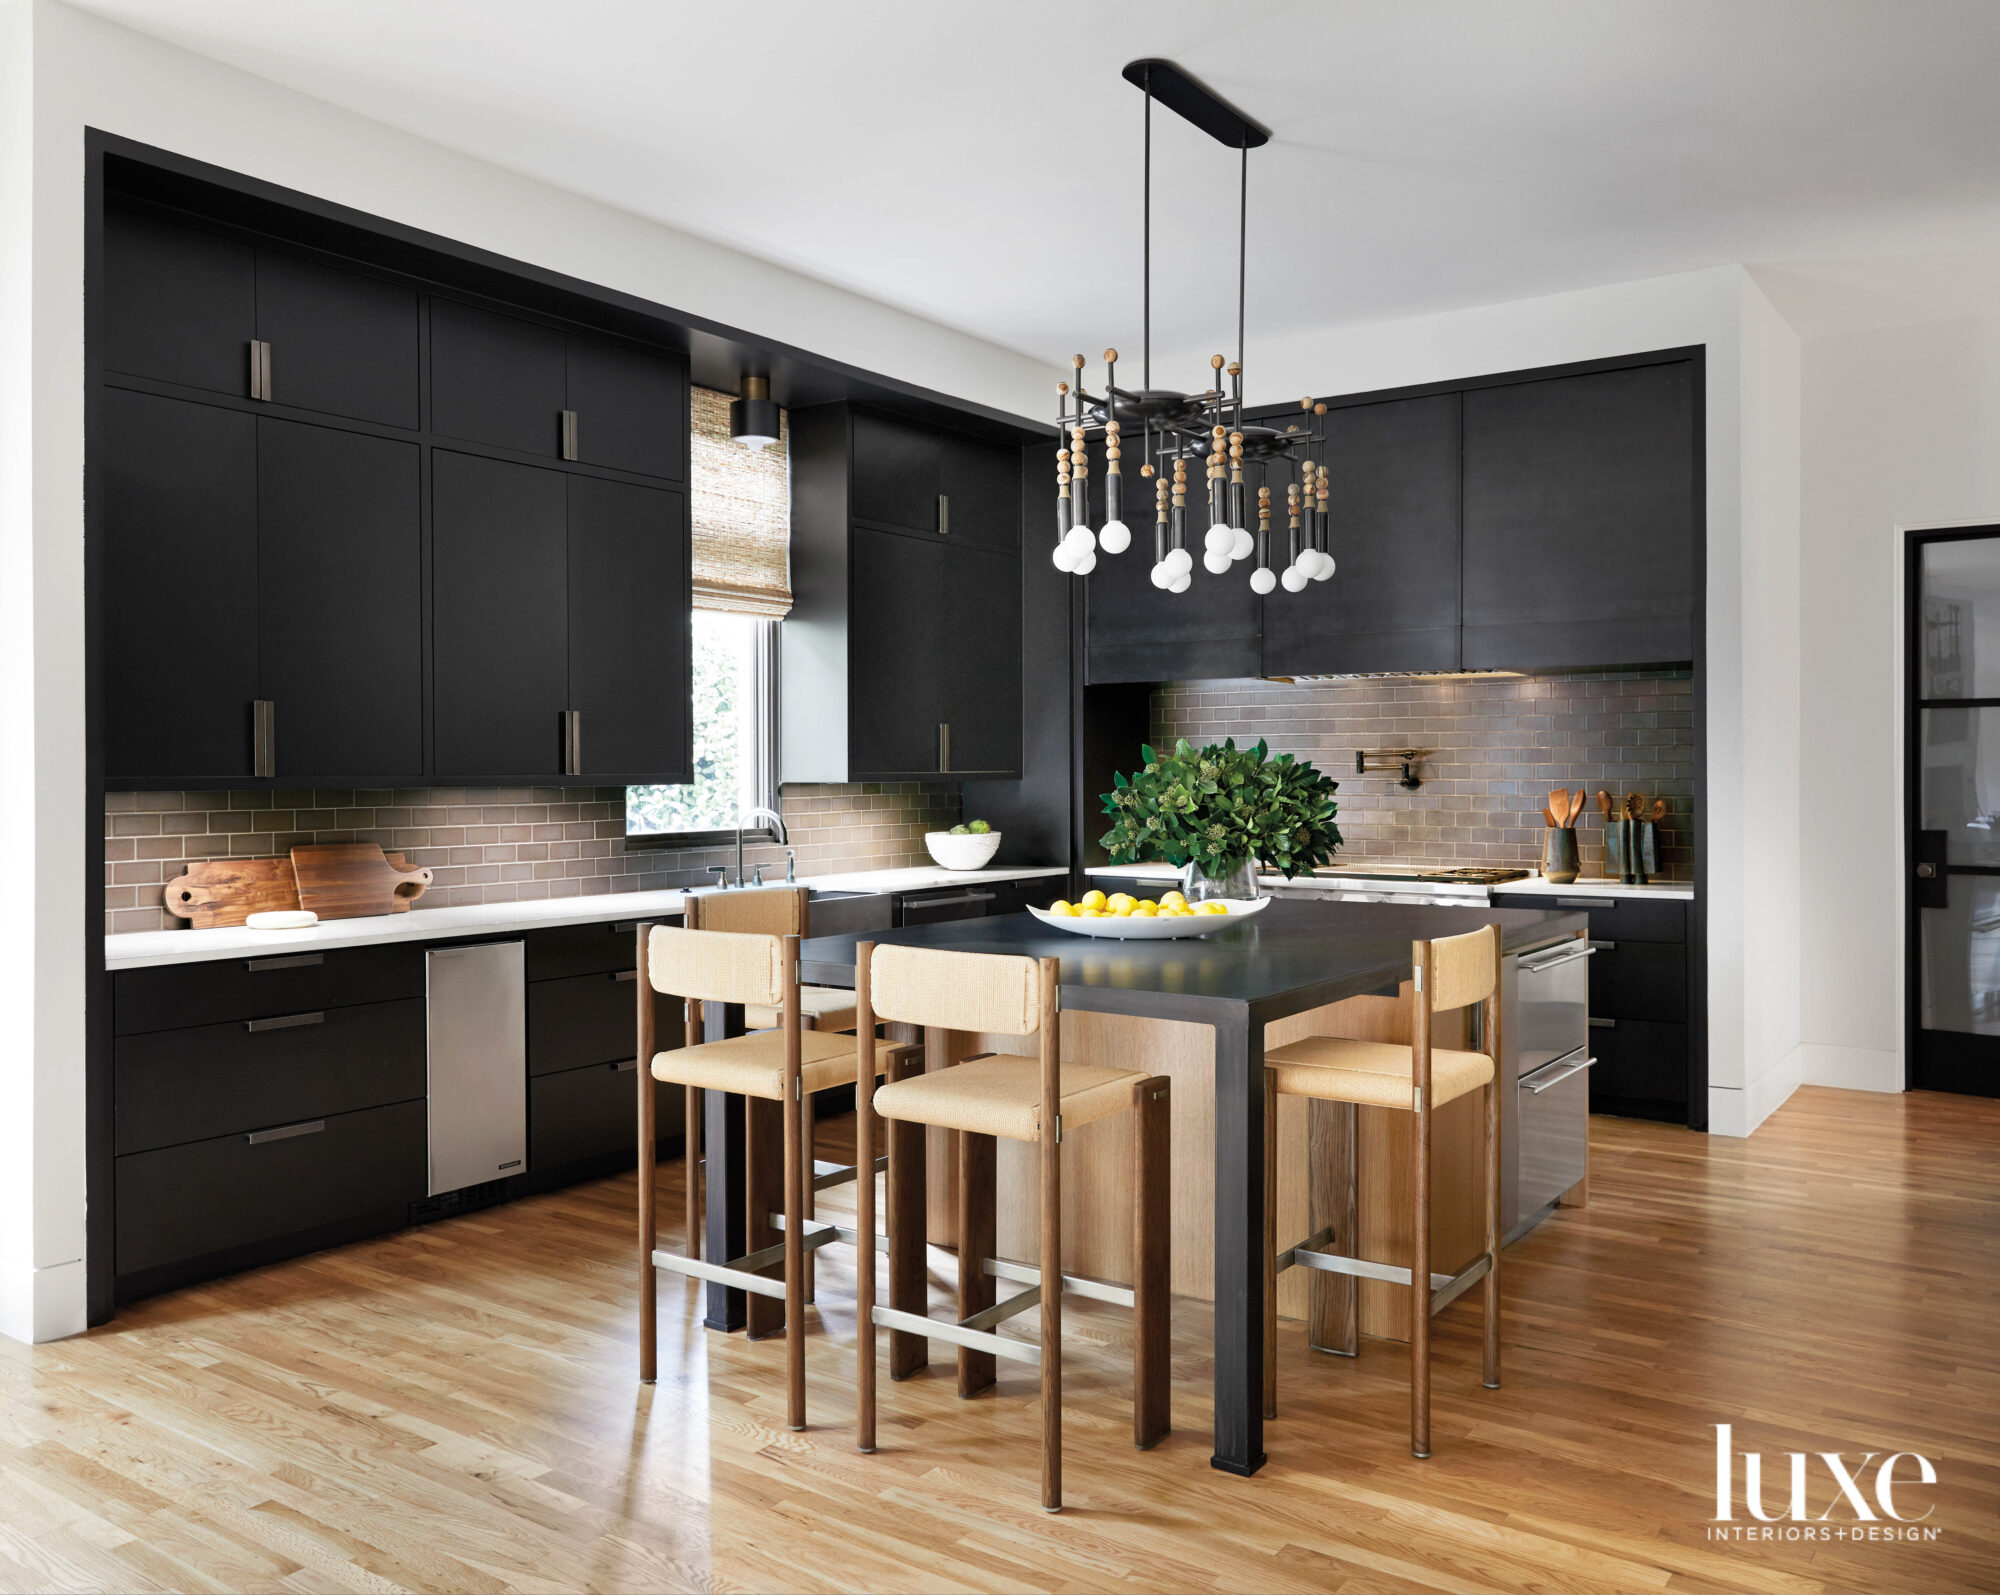 Kitchen with black cabinetry.